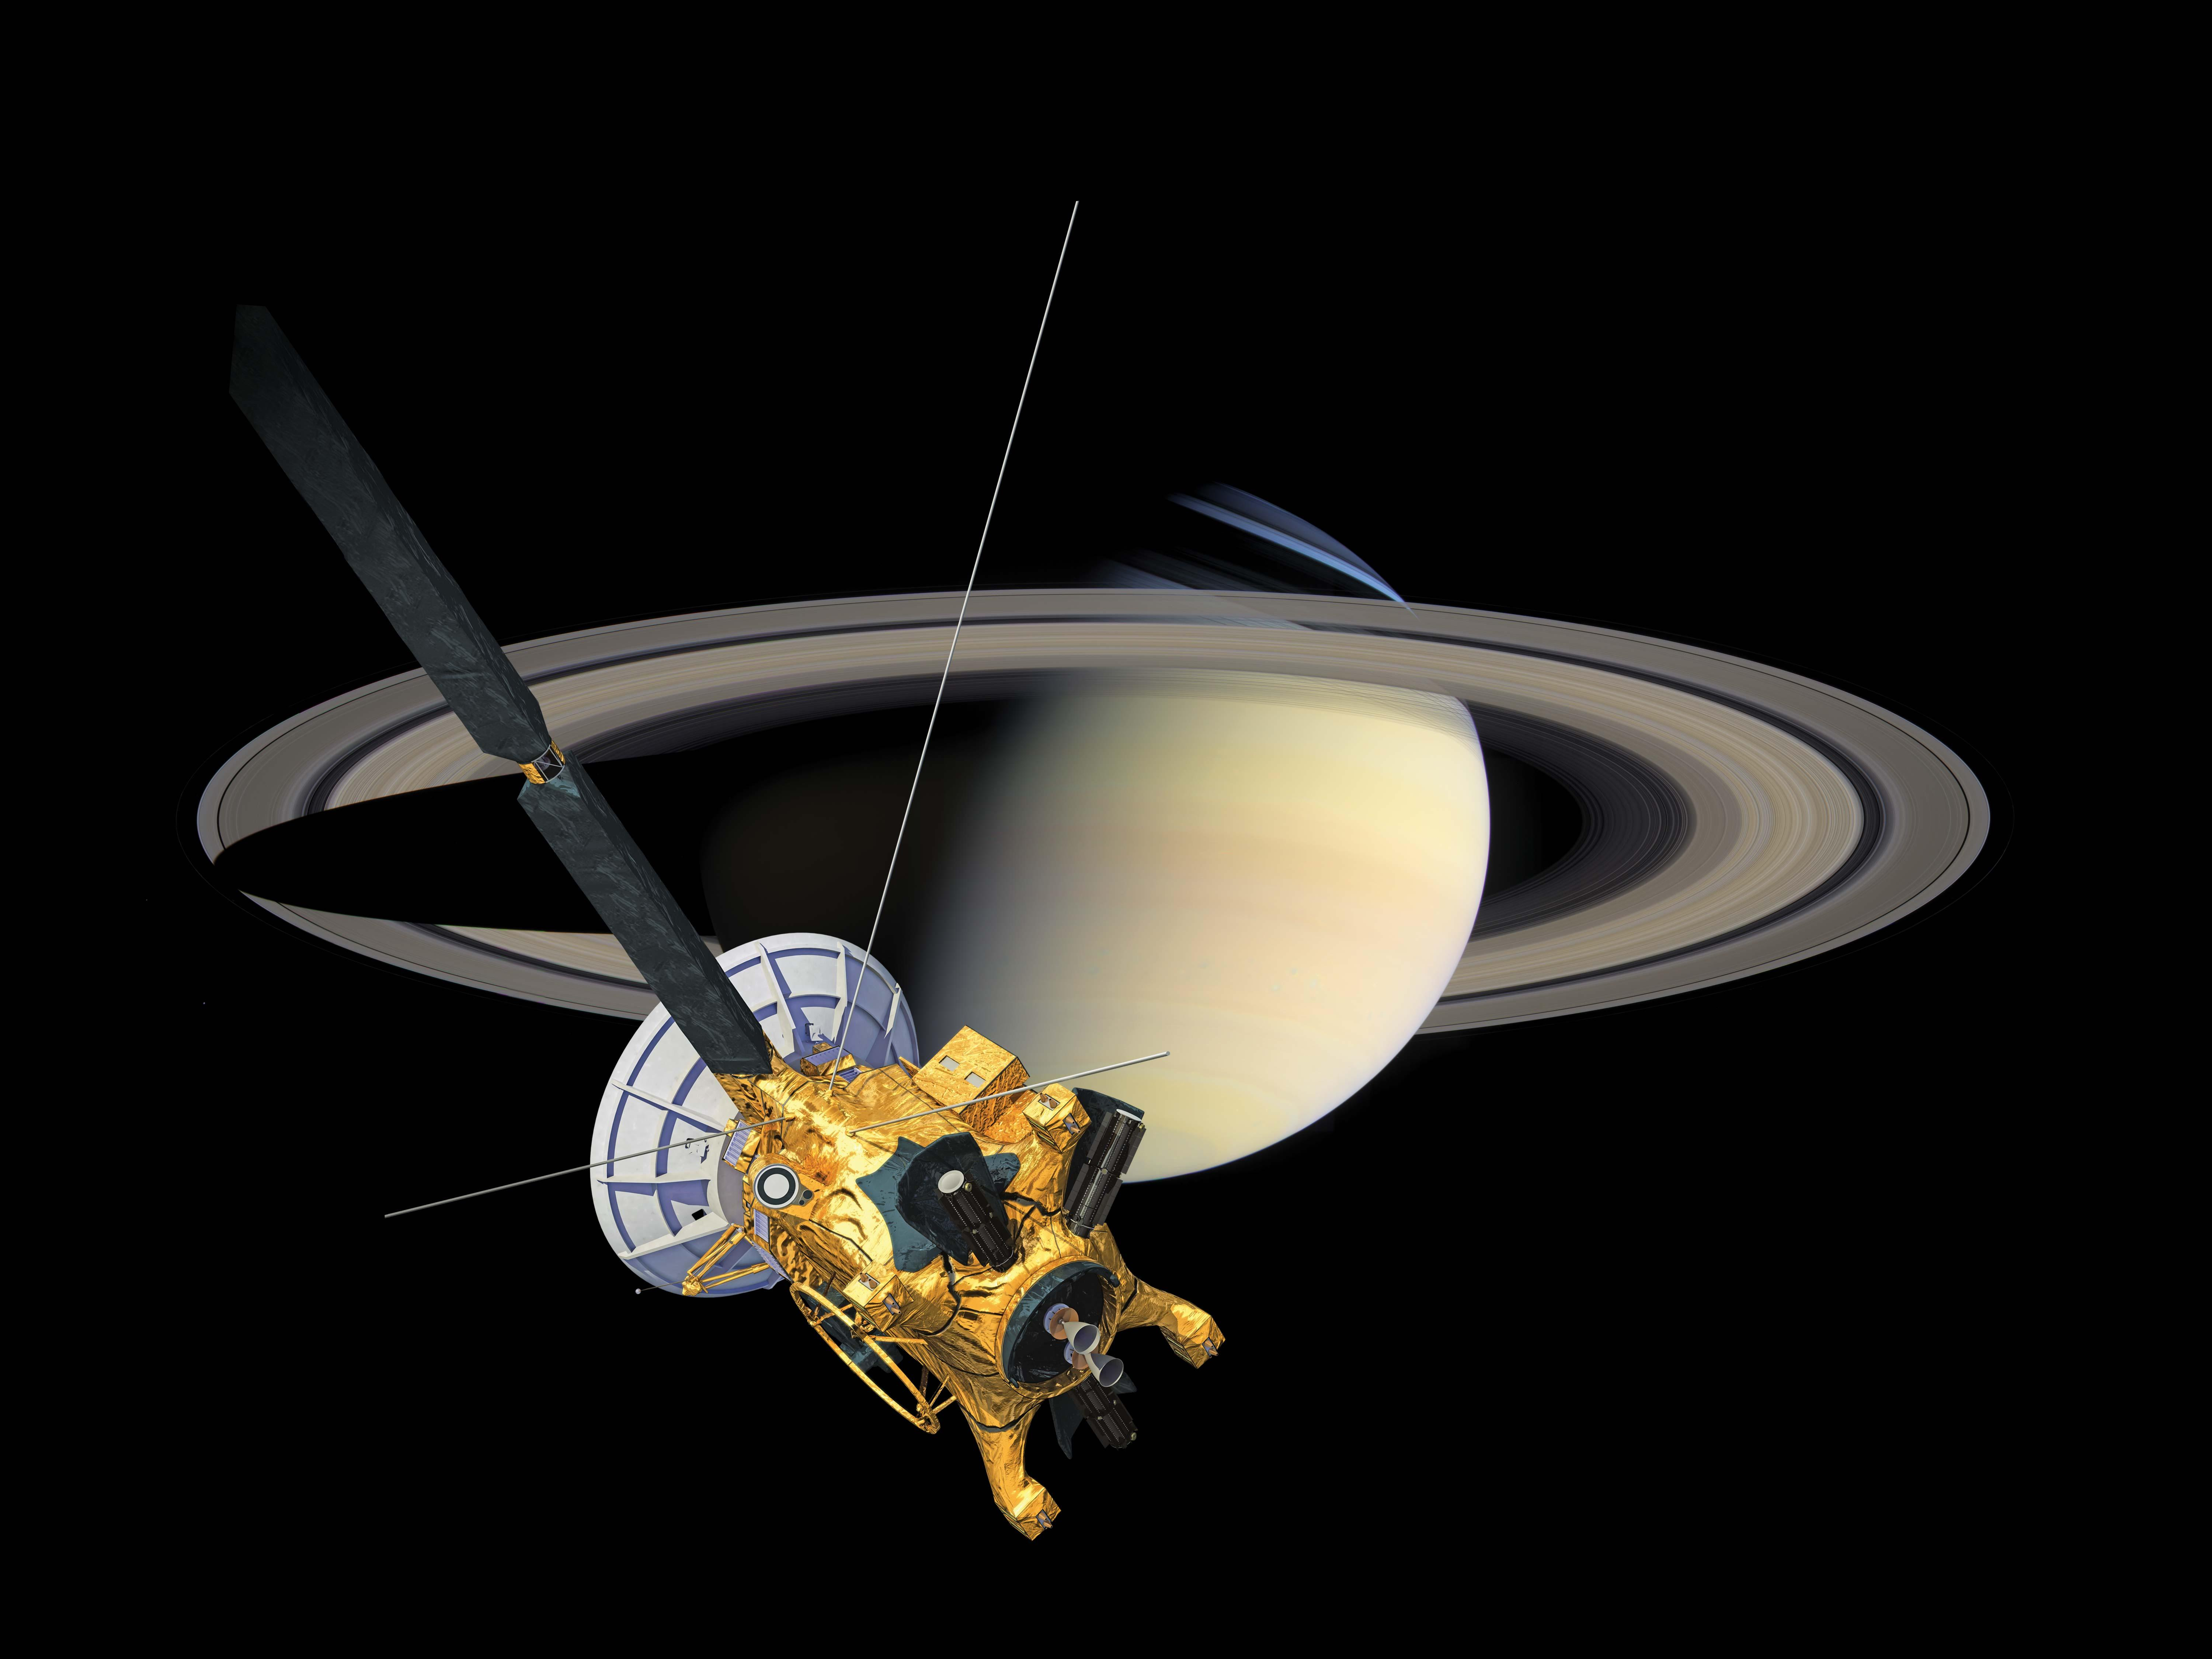 Saturn's shadow passes over its rings as the Cassini spacecraft looks on in this artist's concept.